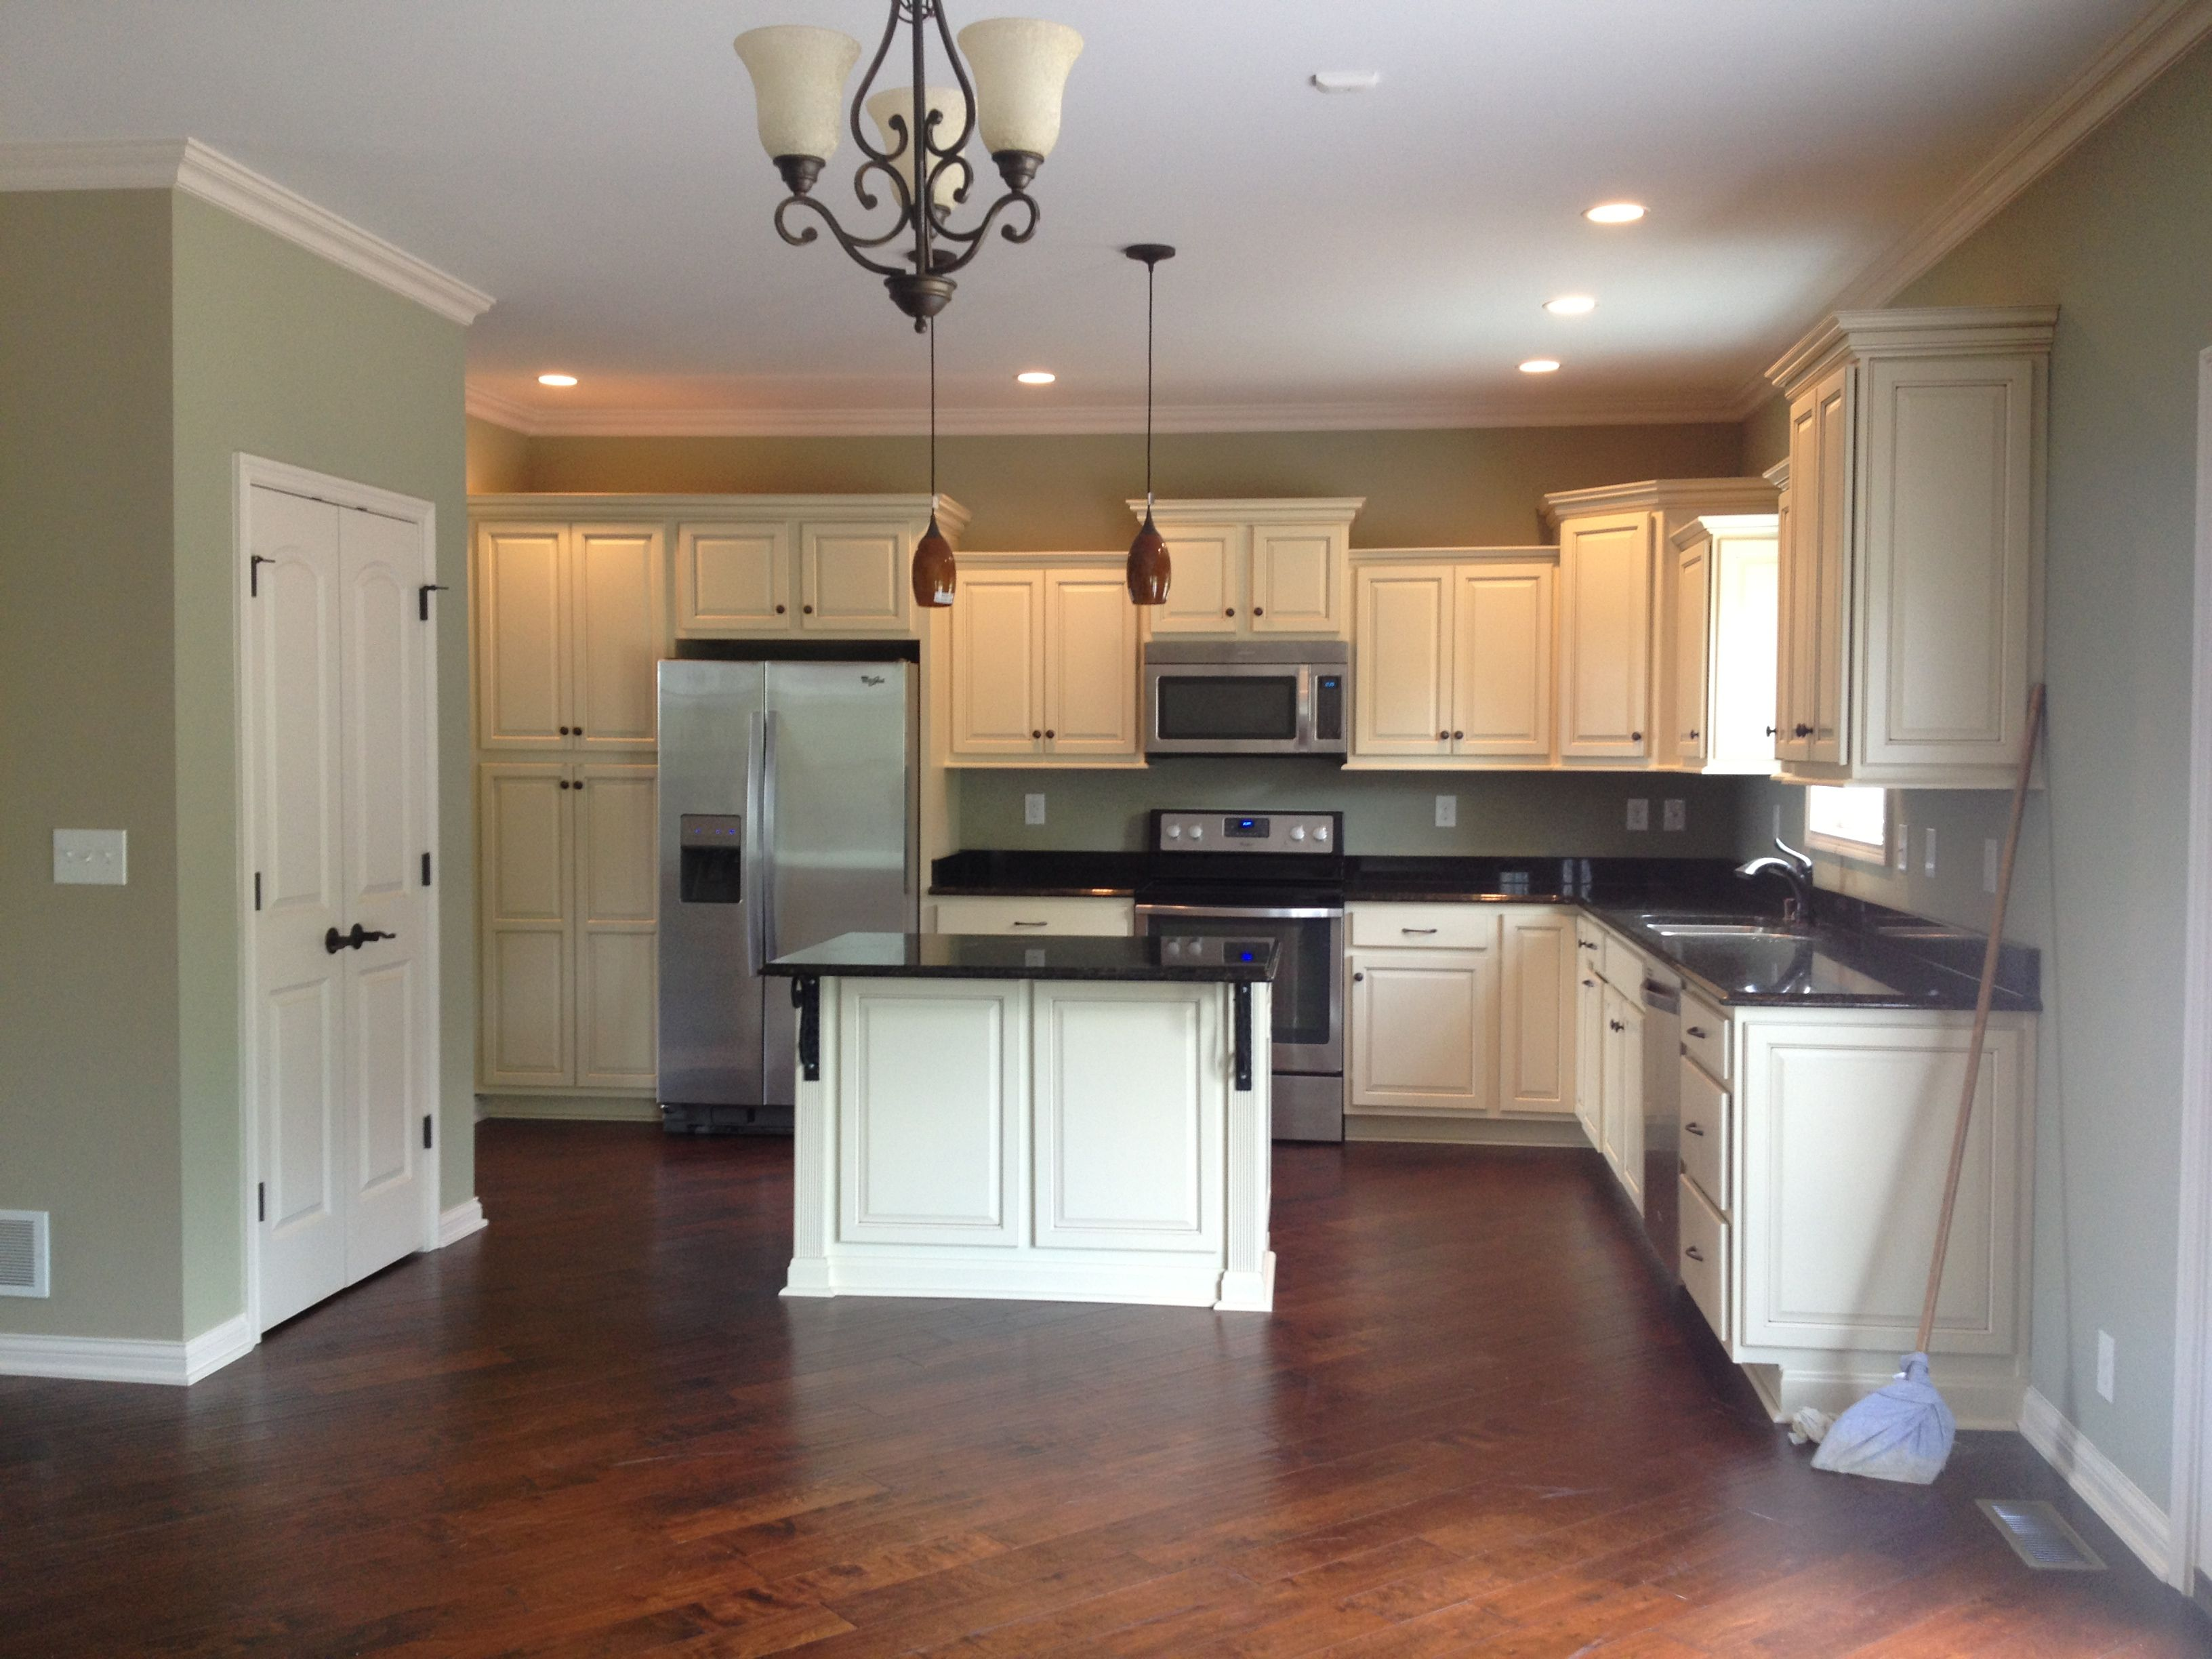 Pictures of kitchens with cream cabinets -  Kitchen Vanilla Cream Cabinets Home Pinterest My